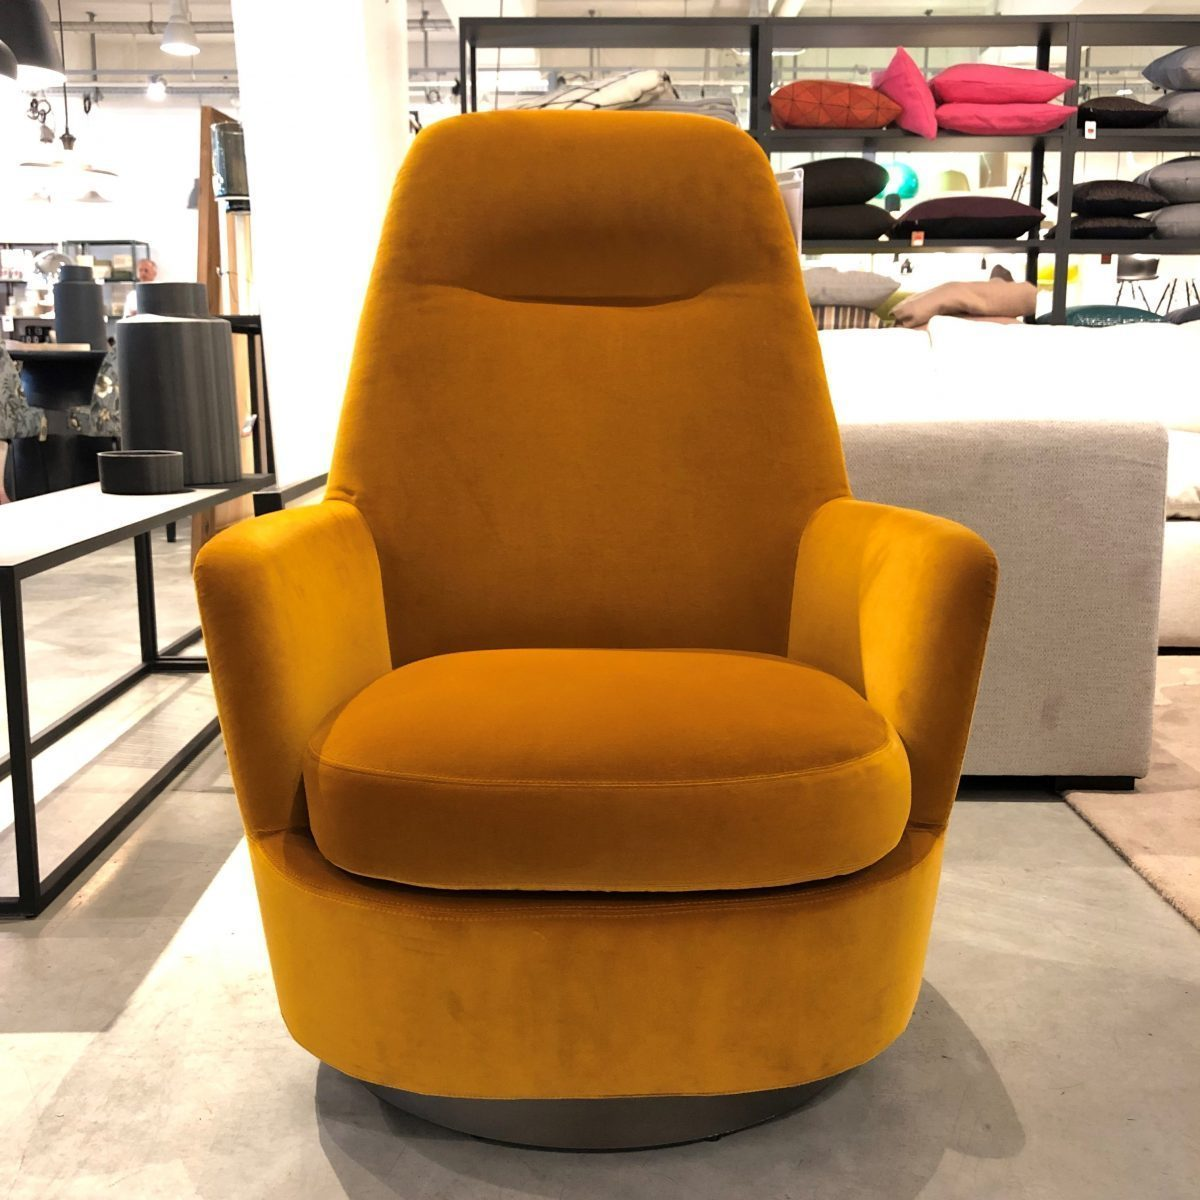 mathes-outlet-produkte-sessel-minotti